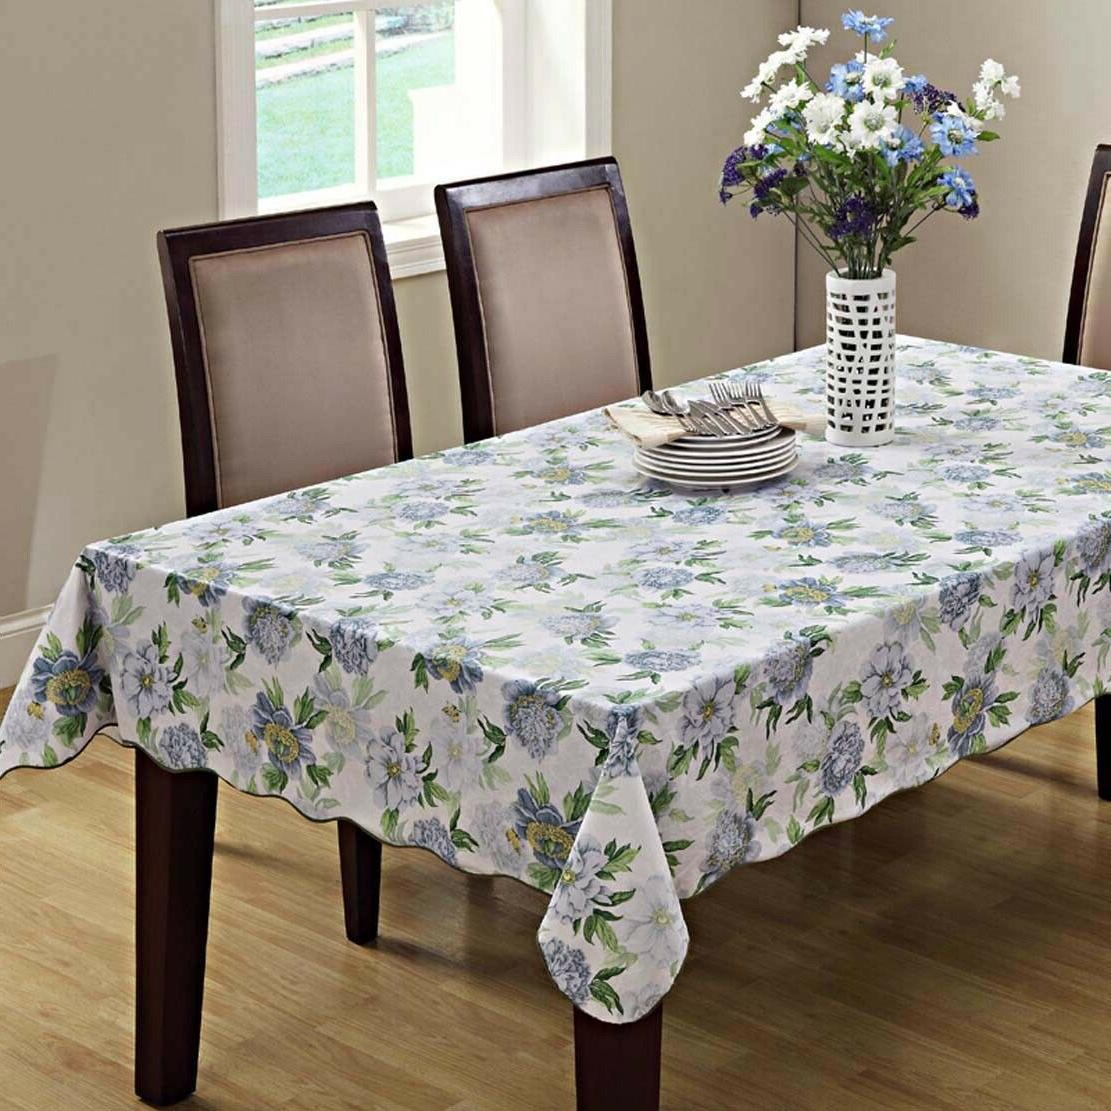 Warterproof Tablecloth